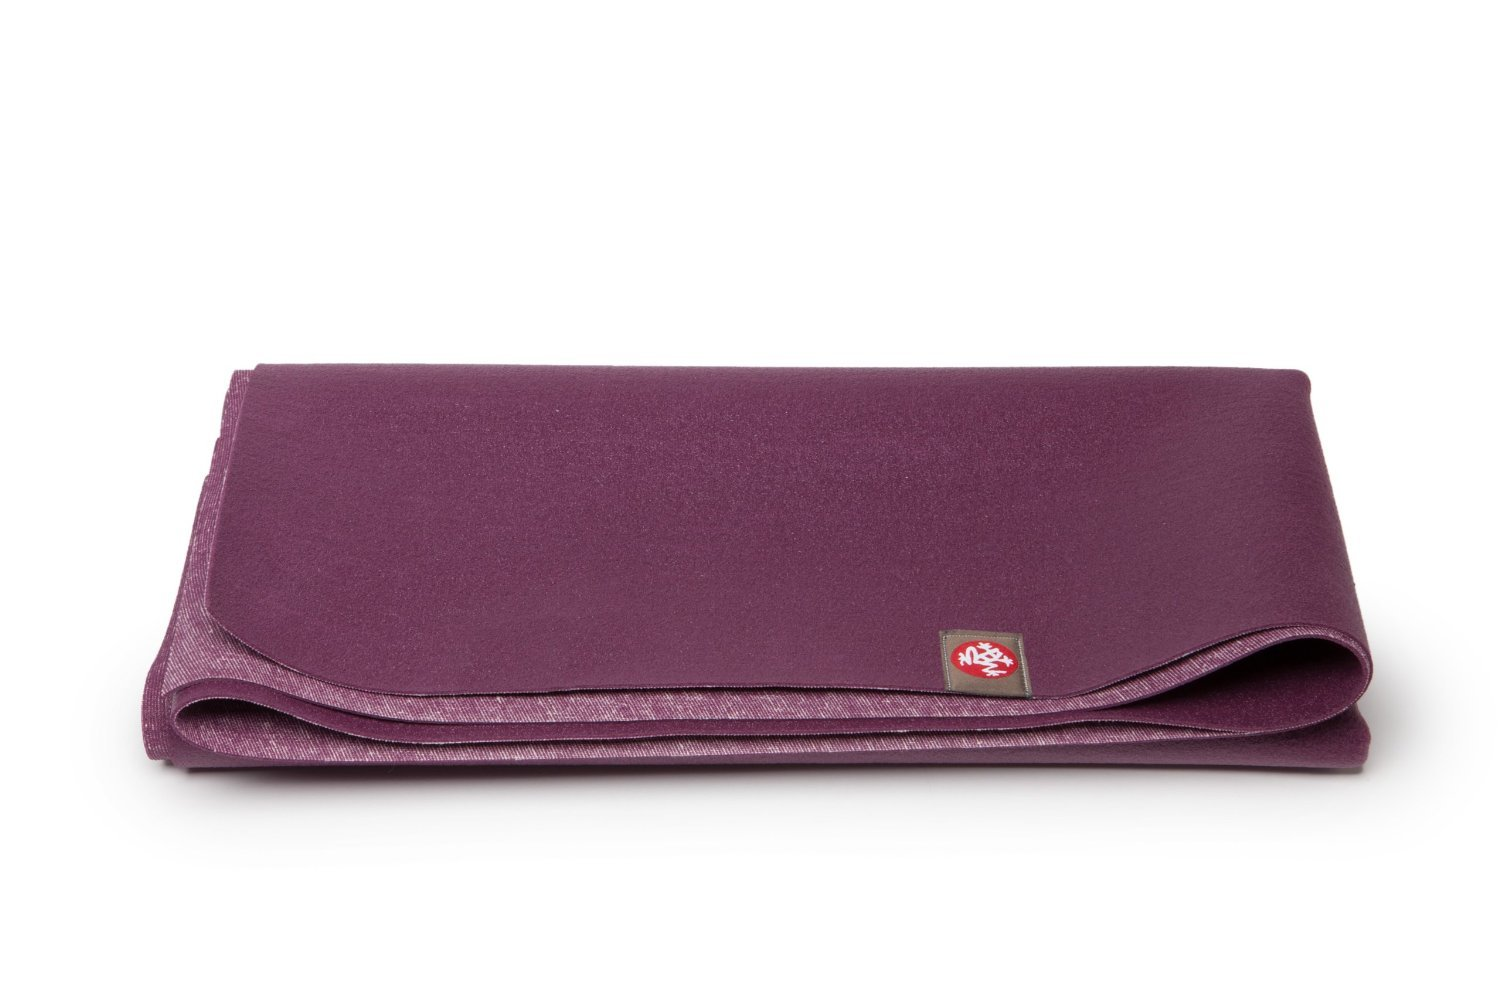 Amazon.com: Manduka eKO SuperLite Yoga Mat - Acai: Health ...